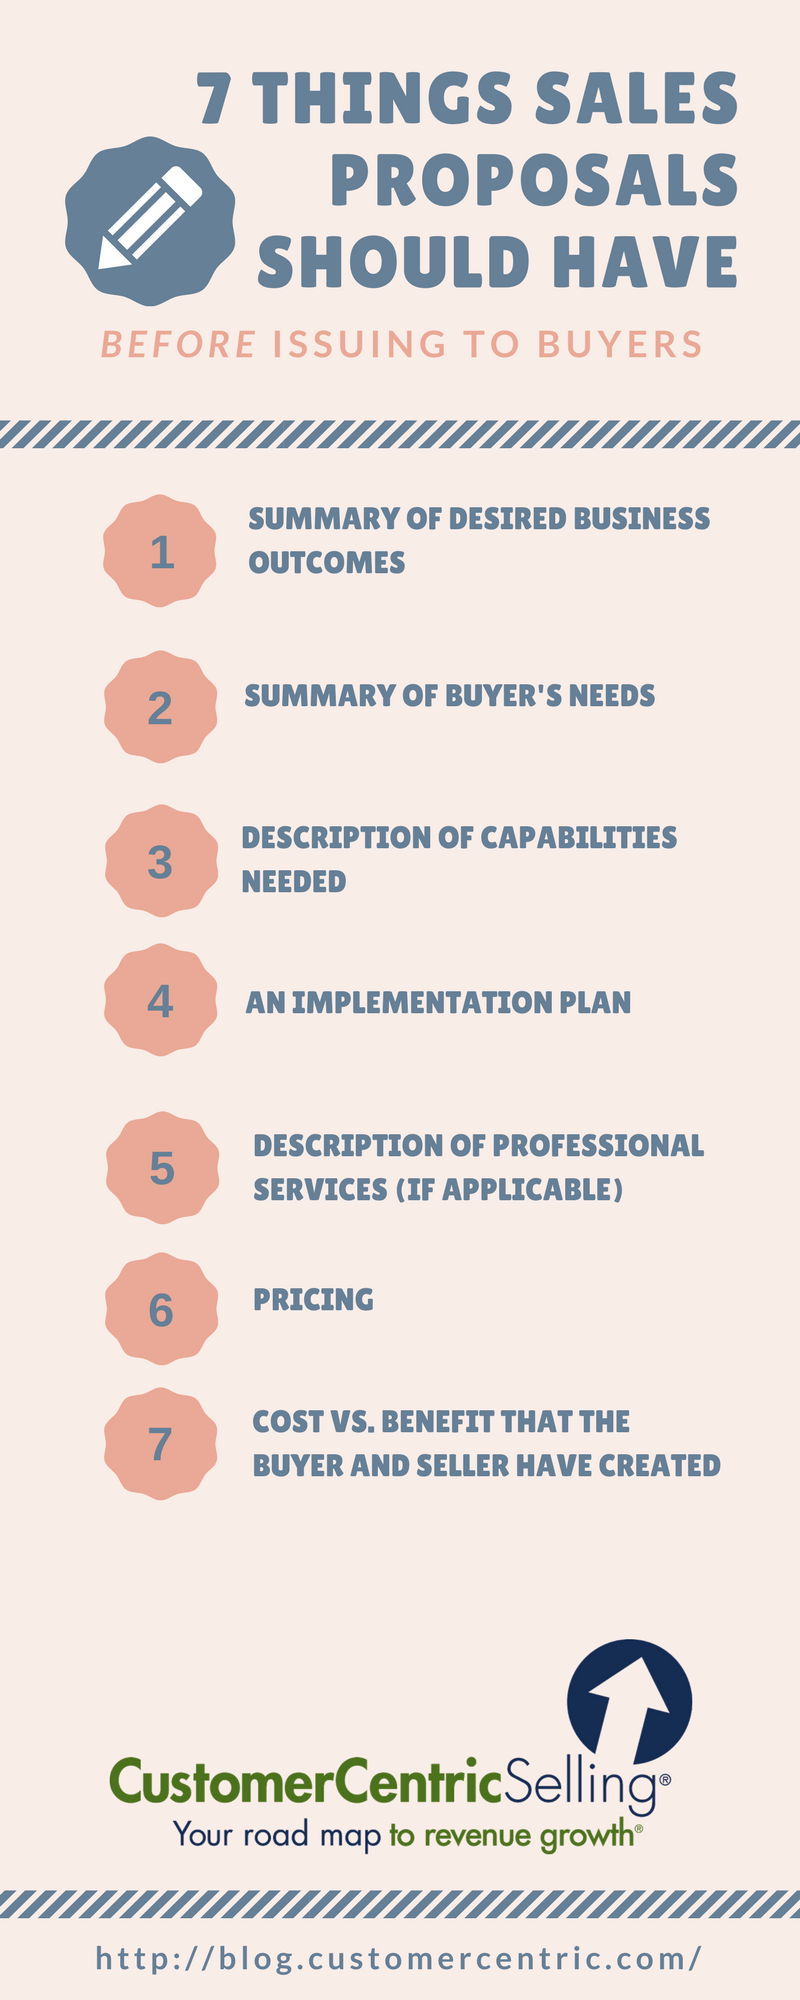 INFOGRAPHIC - 7 Things Sales Proposals Should Have Before Issuing to Buyers